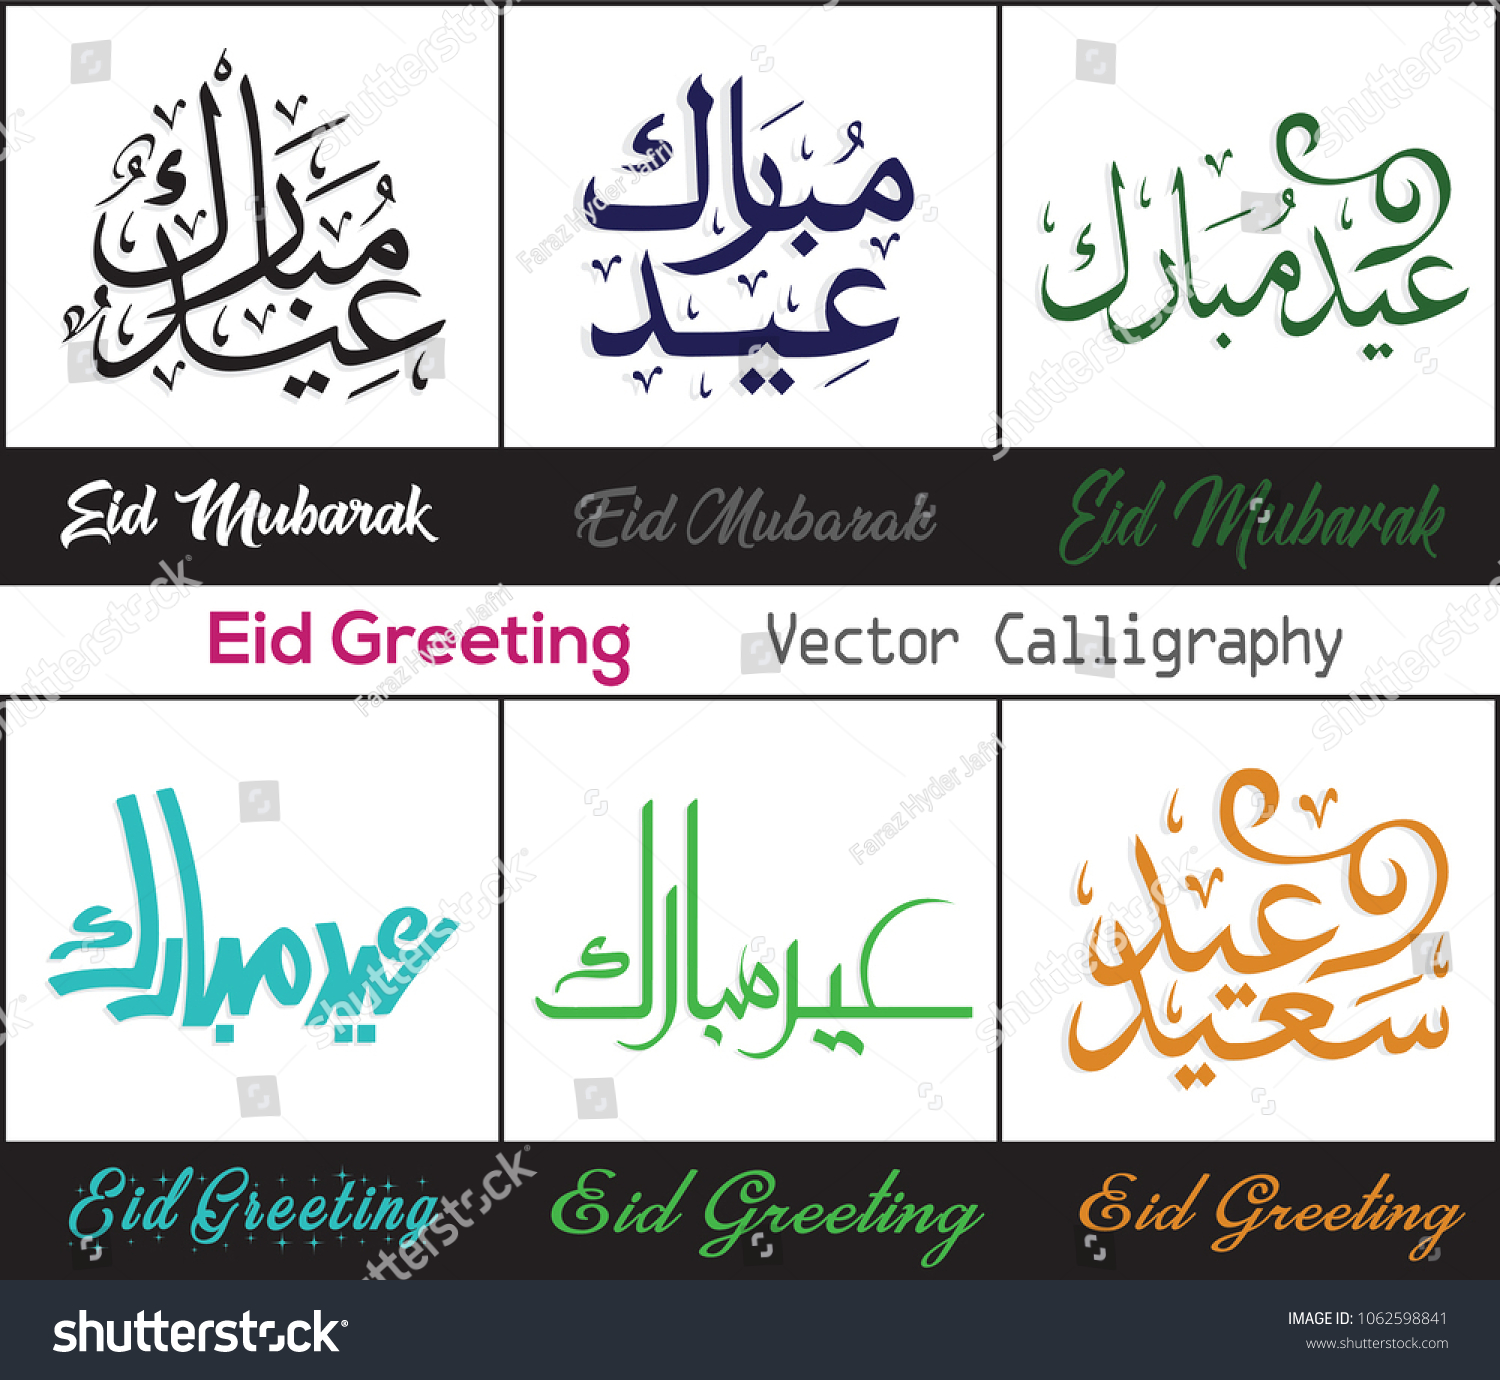 Greeting In English Images Greetings Card Design Simple